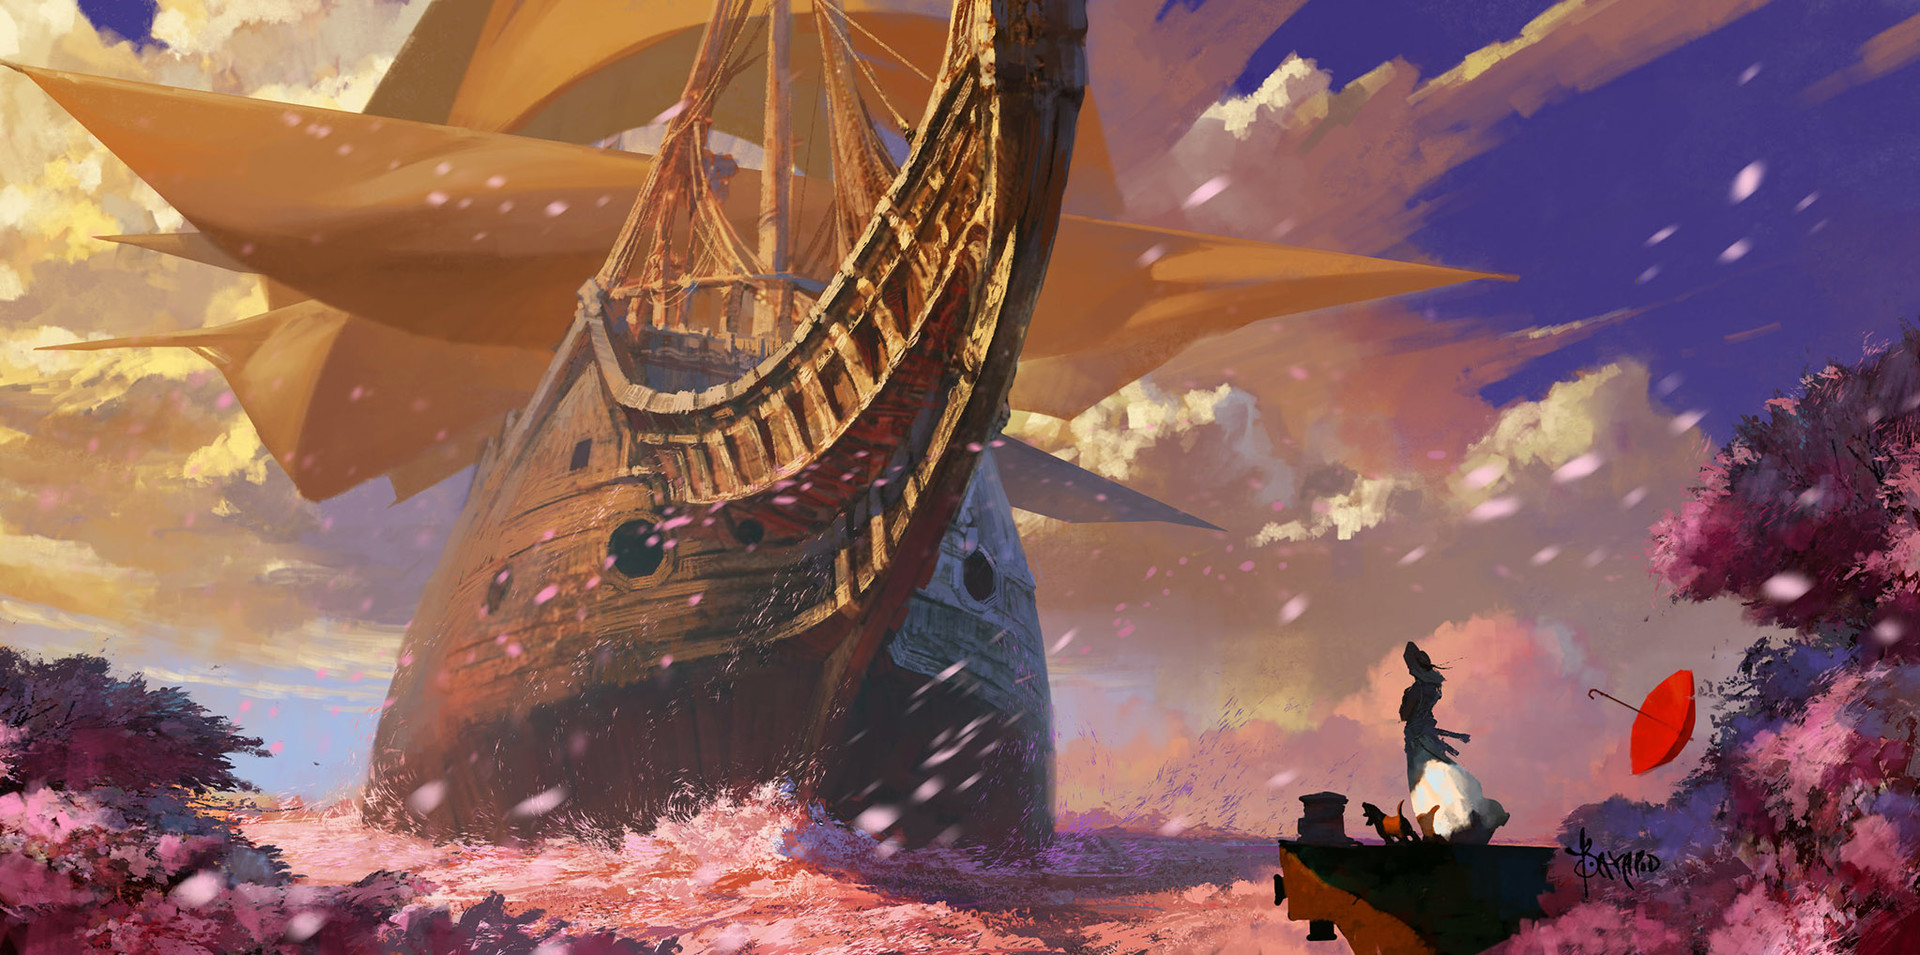 Bayard Wu Digital Painting Illustration Fantasy Ship Boat Sakura Flowers Sea